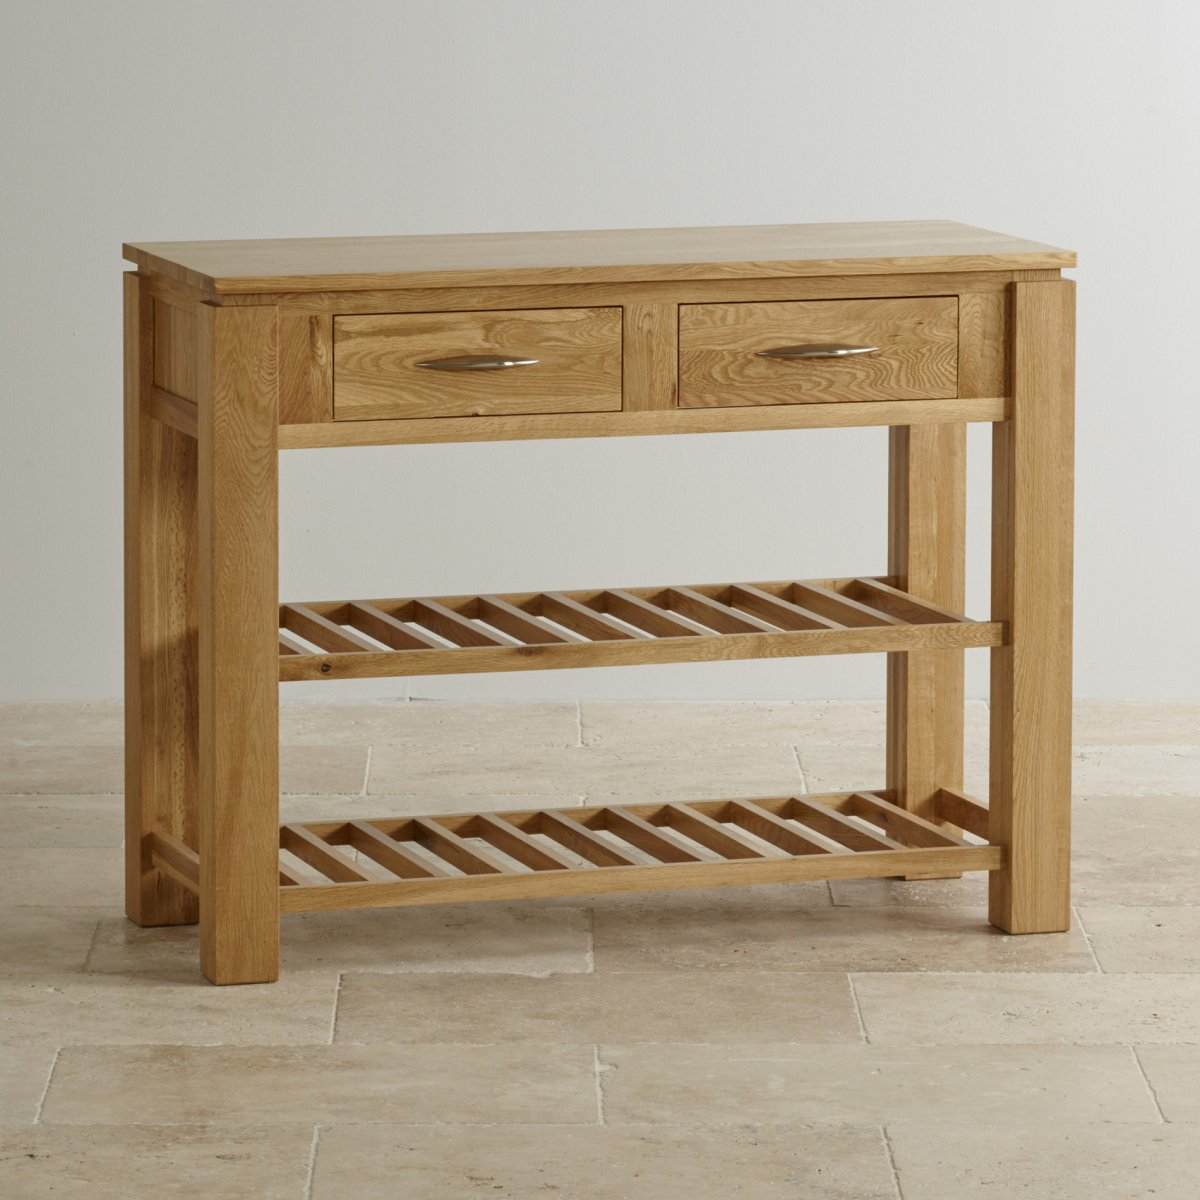 Galway natural solid oak storage console table Console tables with storage